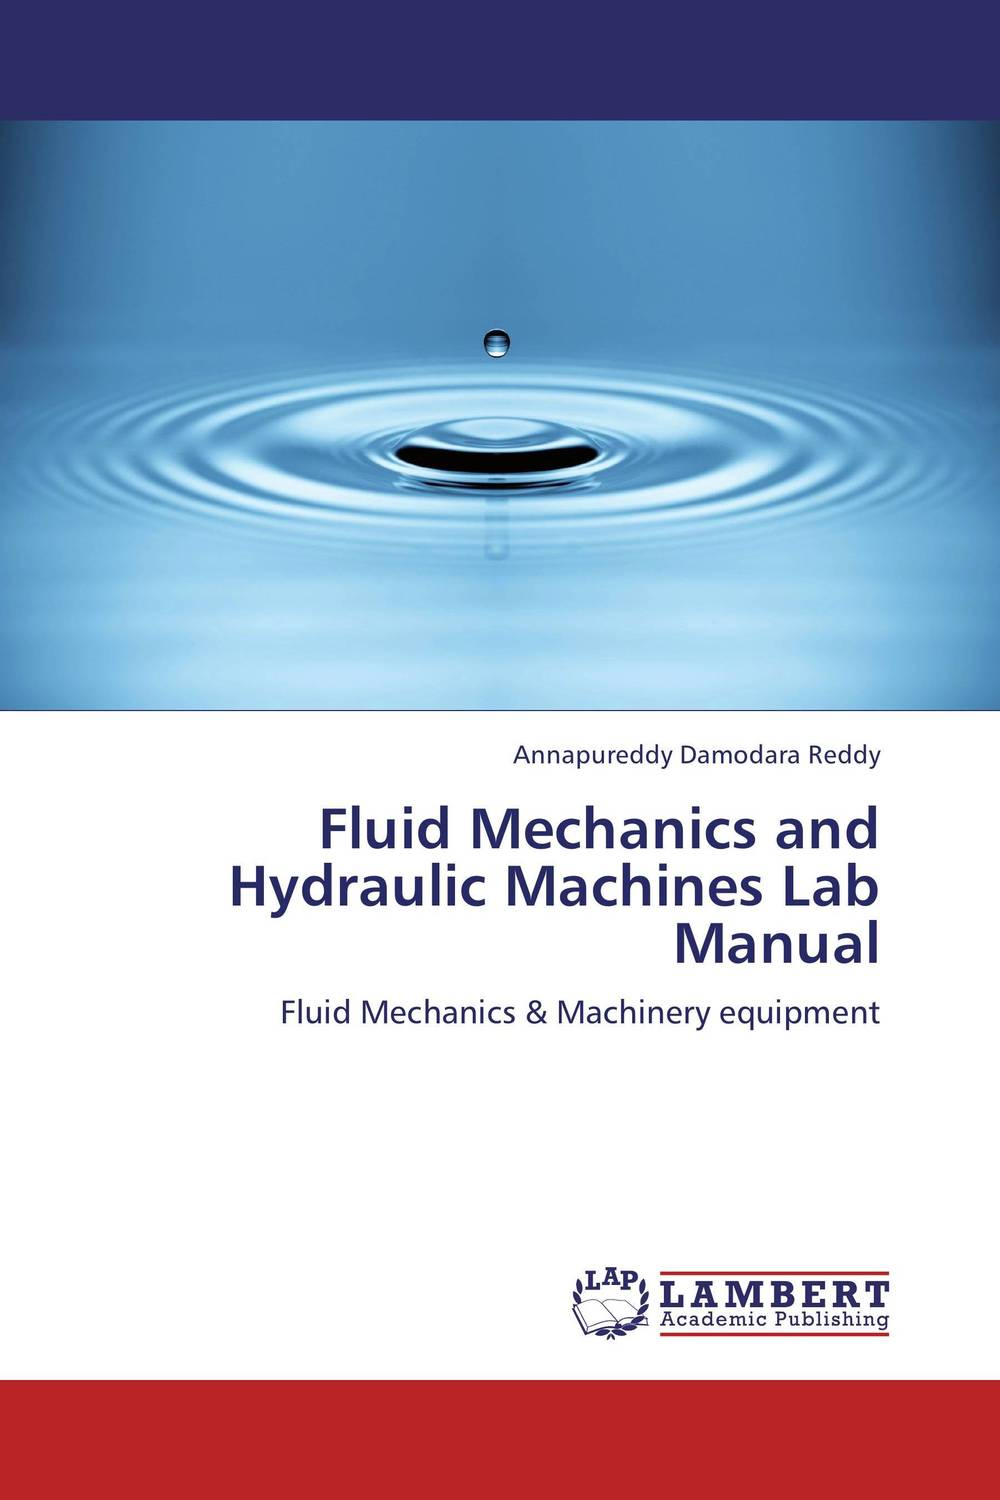 Fluid Mechanics and  Hydraulic Machines Lab Manual encyclopedia of fluid mechanics supplement 2